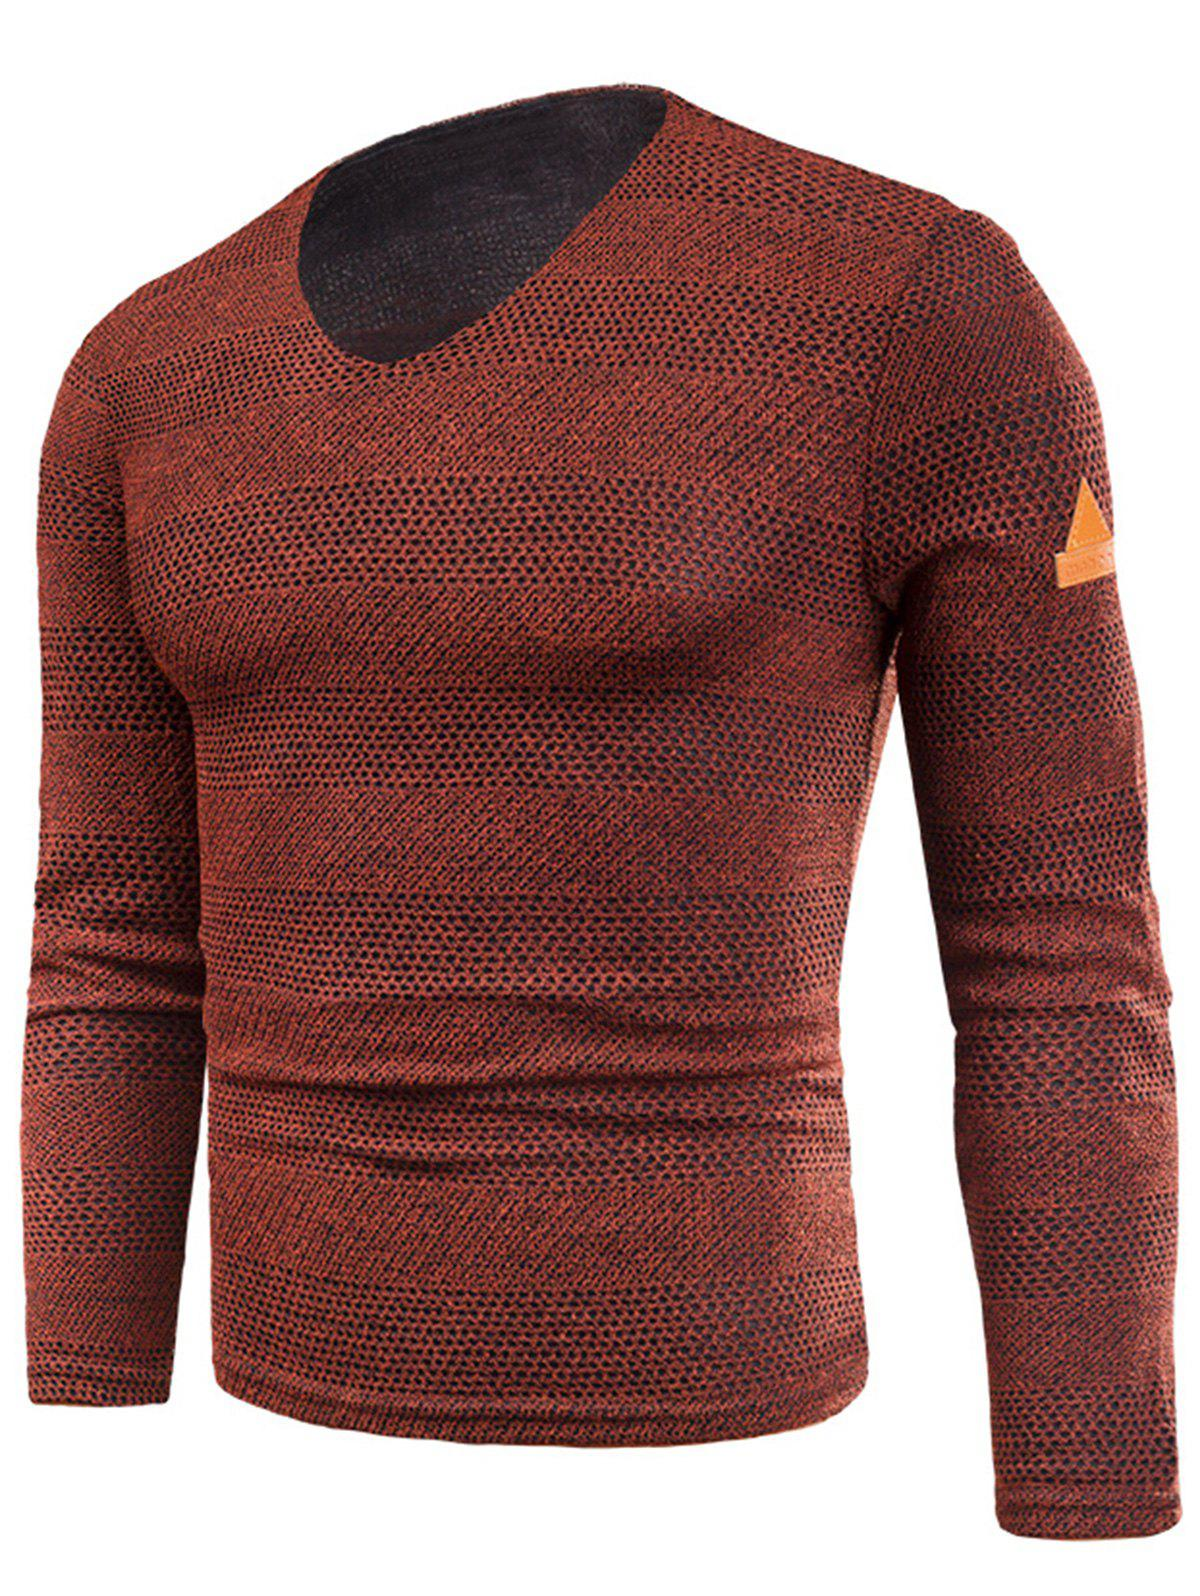 V Neck Long Sleeve Knitted Fleece T-shirt - RED 2XL